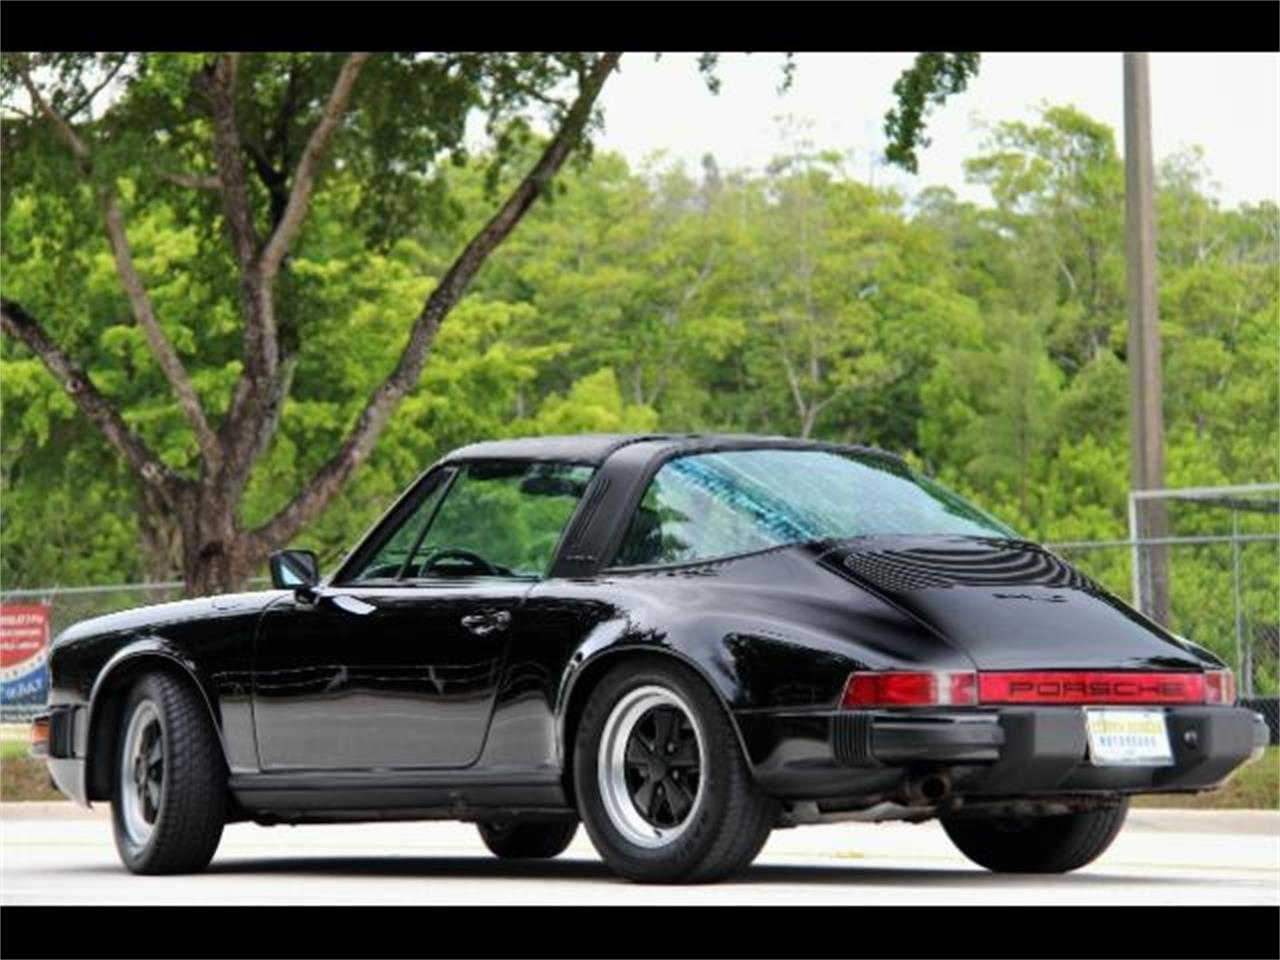 Cars For Sale Miami Beach: 1980 Porsche 911 For Sale